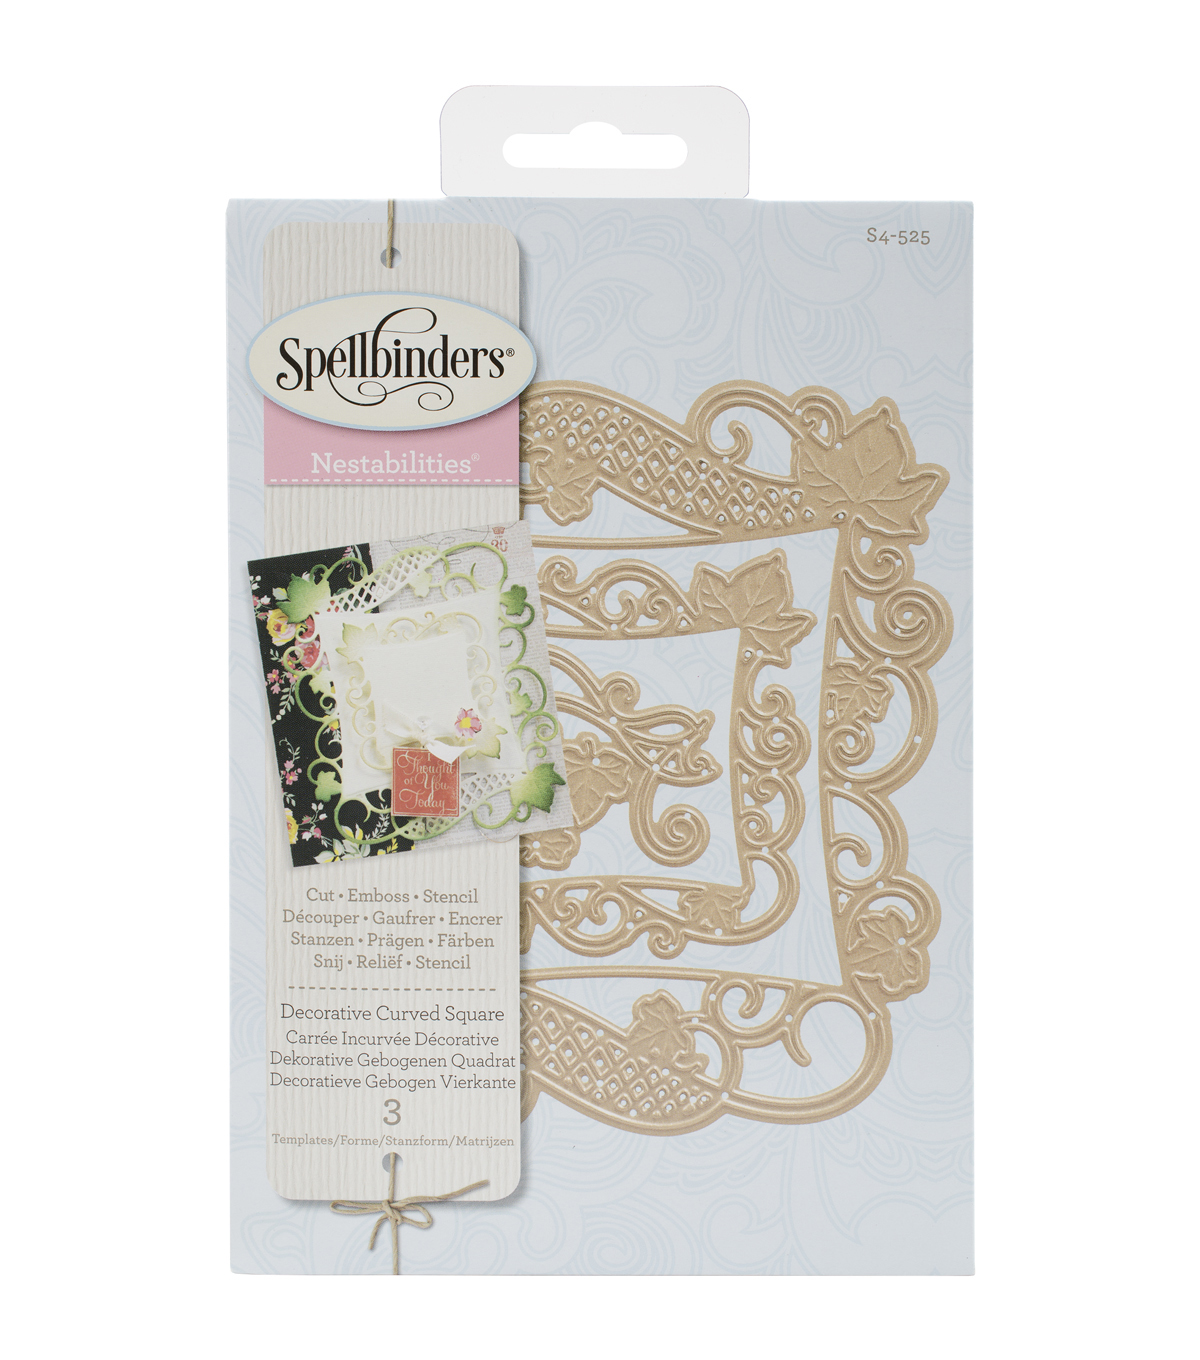 Spellbinders Nestabilities Decorative Elements Dies-Curved Square